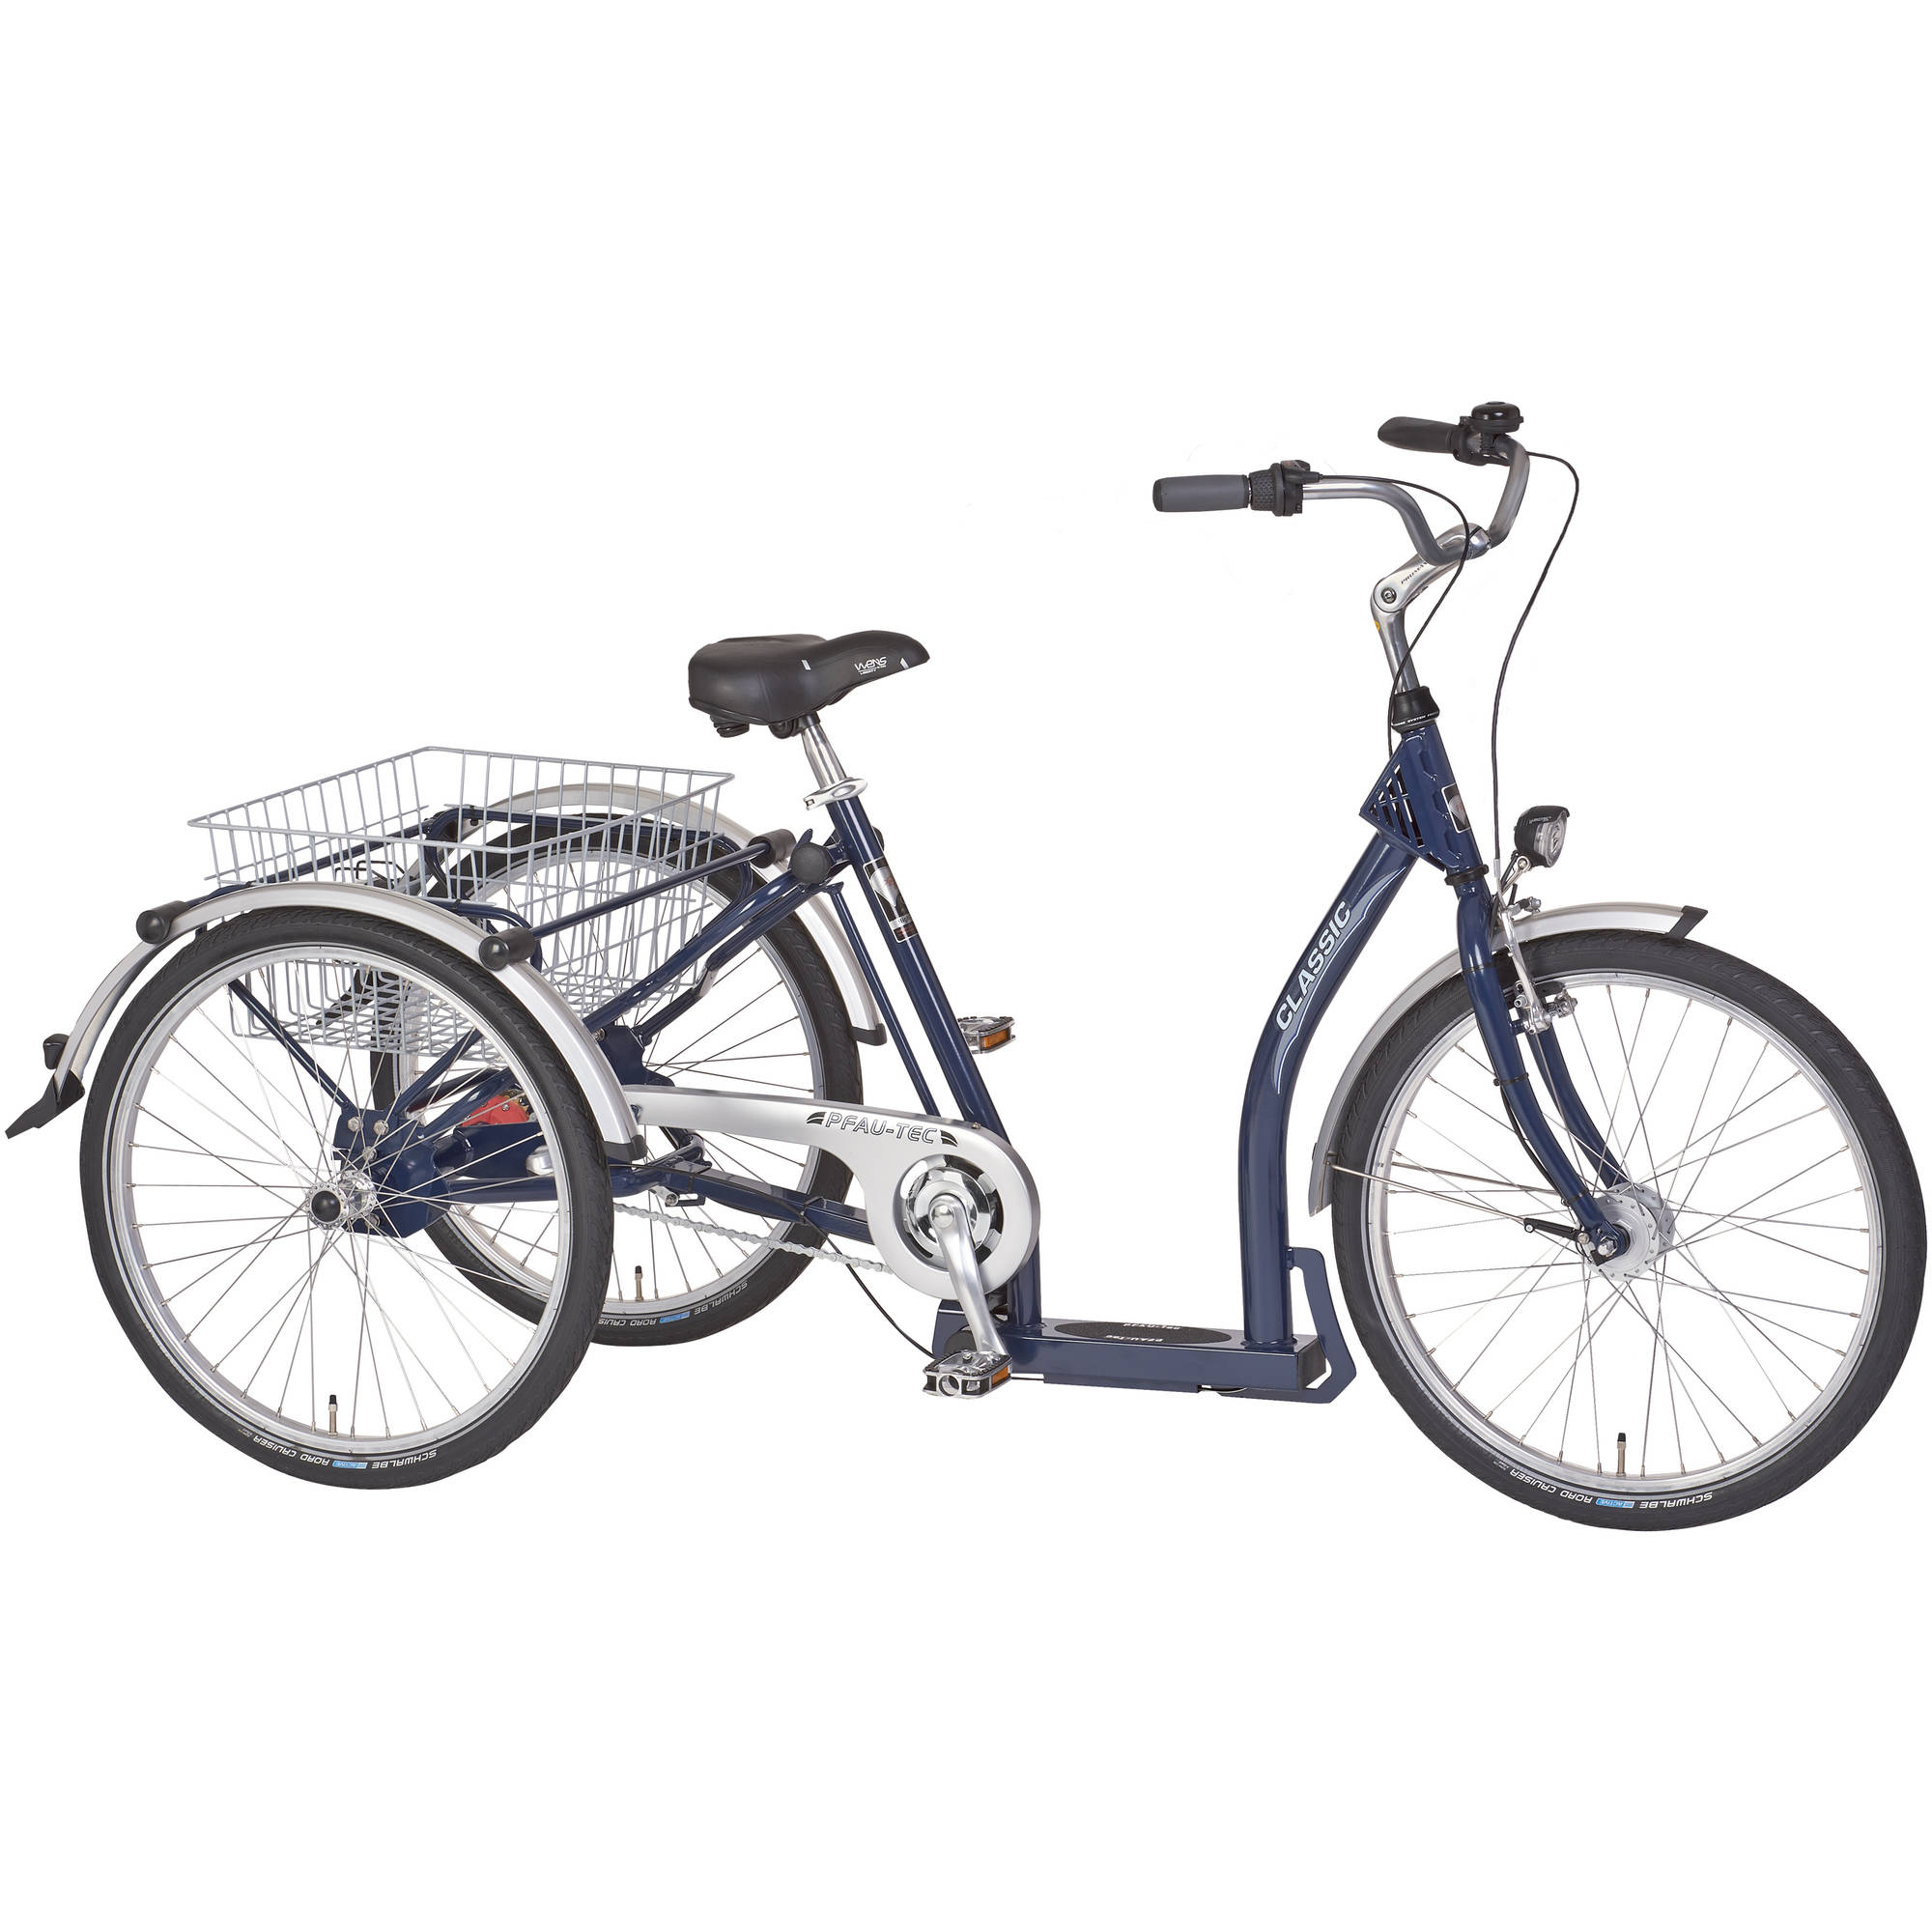 "PFIFF Classic Adult Tricycle, 24"" and 26"" Wheels, Nexus 3-Speed Drive, Dark Blue"